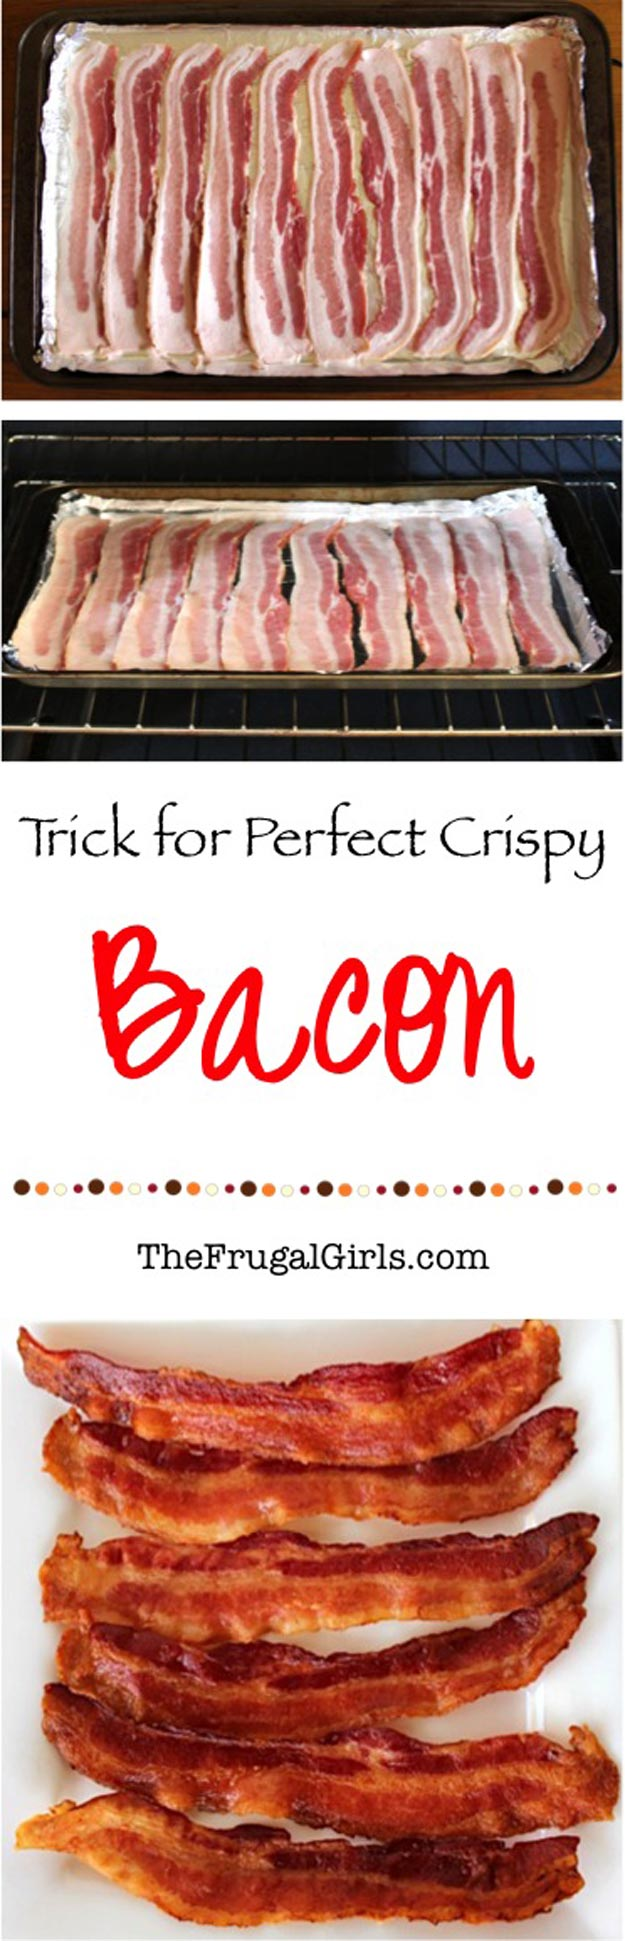 Coolest Cooking Hacks, Tips and Tricks for Easy Meal Prep, Recipe Shortcuts and Quick Ideas for Food | Make Perfect Crispy Bacon in the Oven